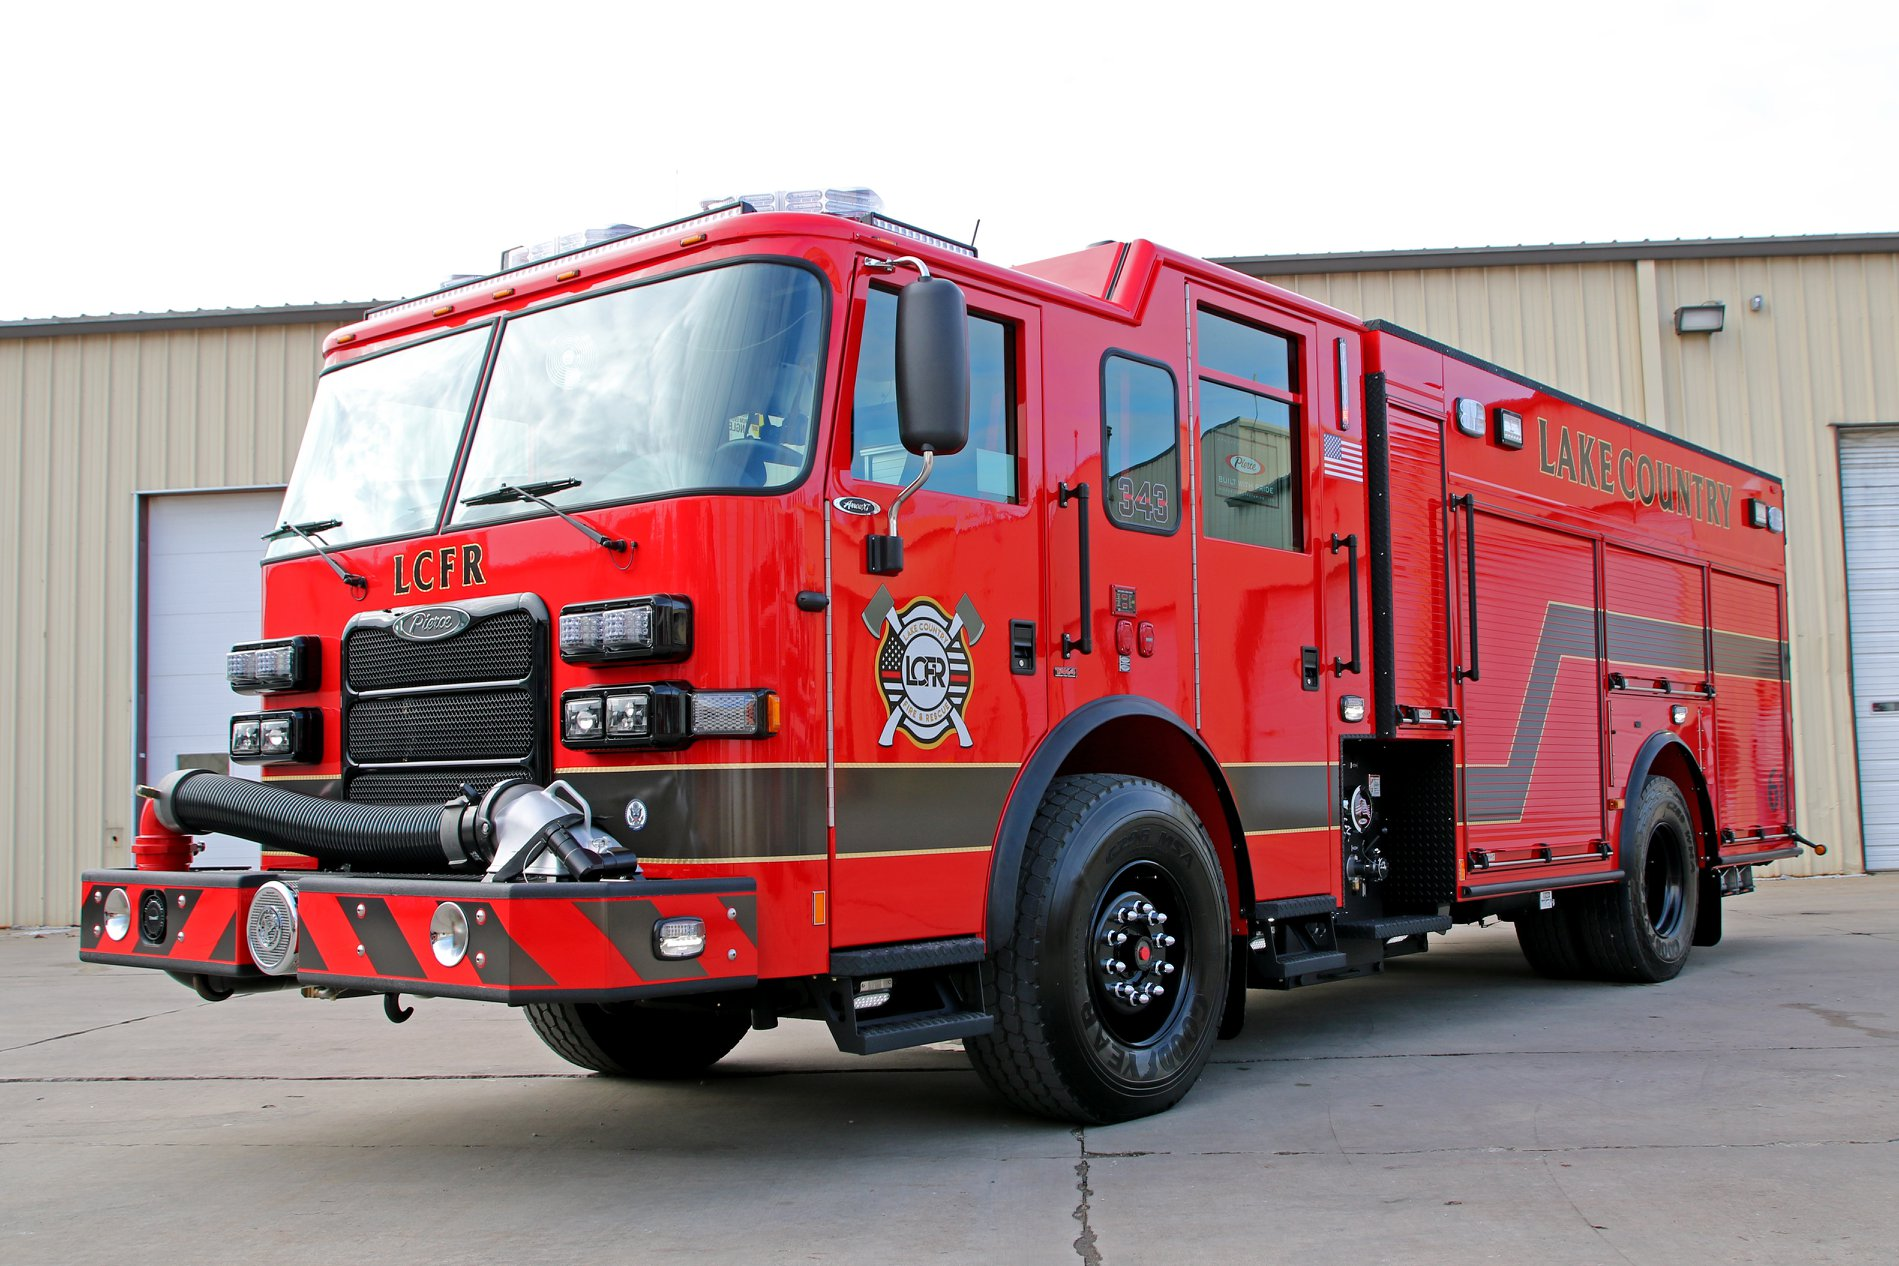 Lake Country Fire Rescue Home Page - Go to the Fire Department Home Page